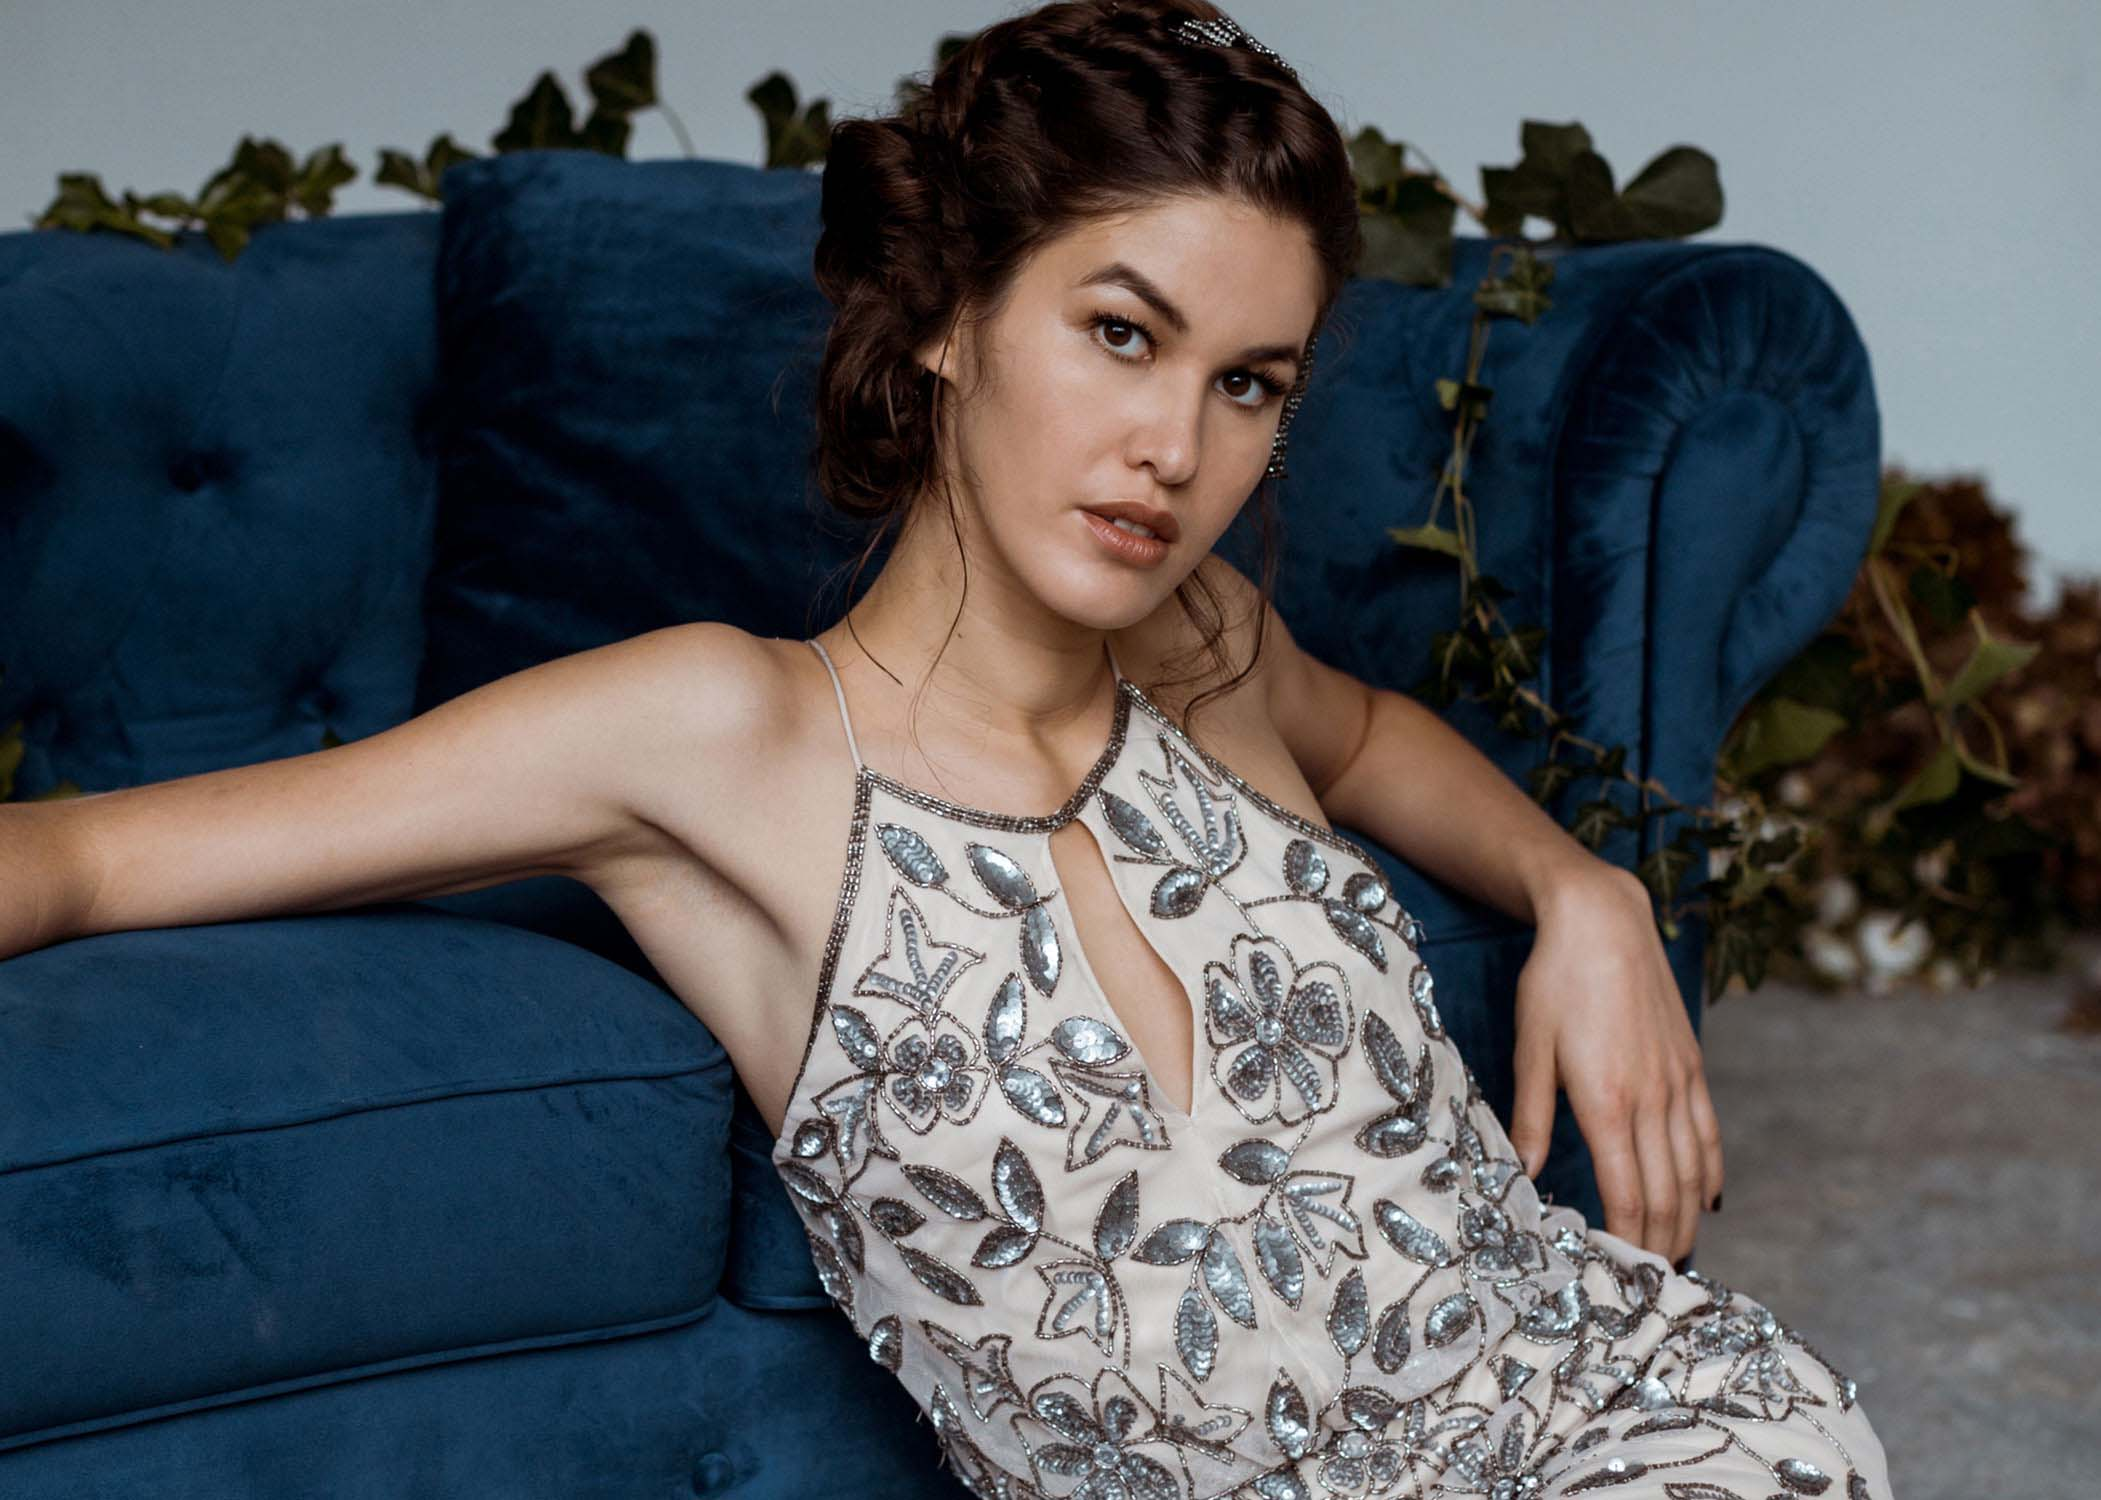 A bride sitting against blue couch from a lookbook, commercial, editorial shoot